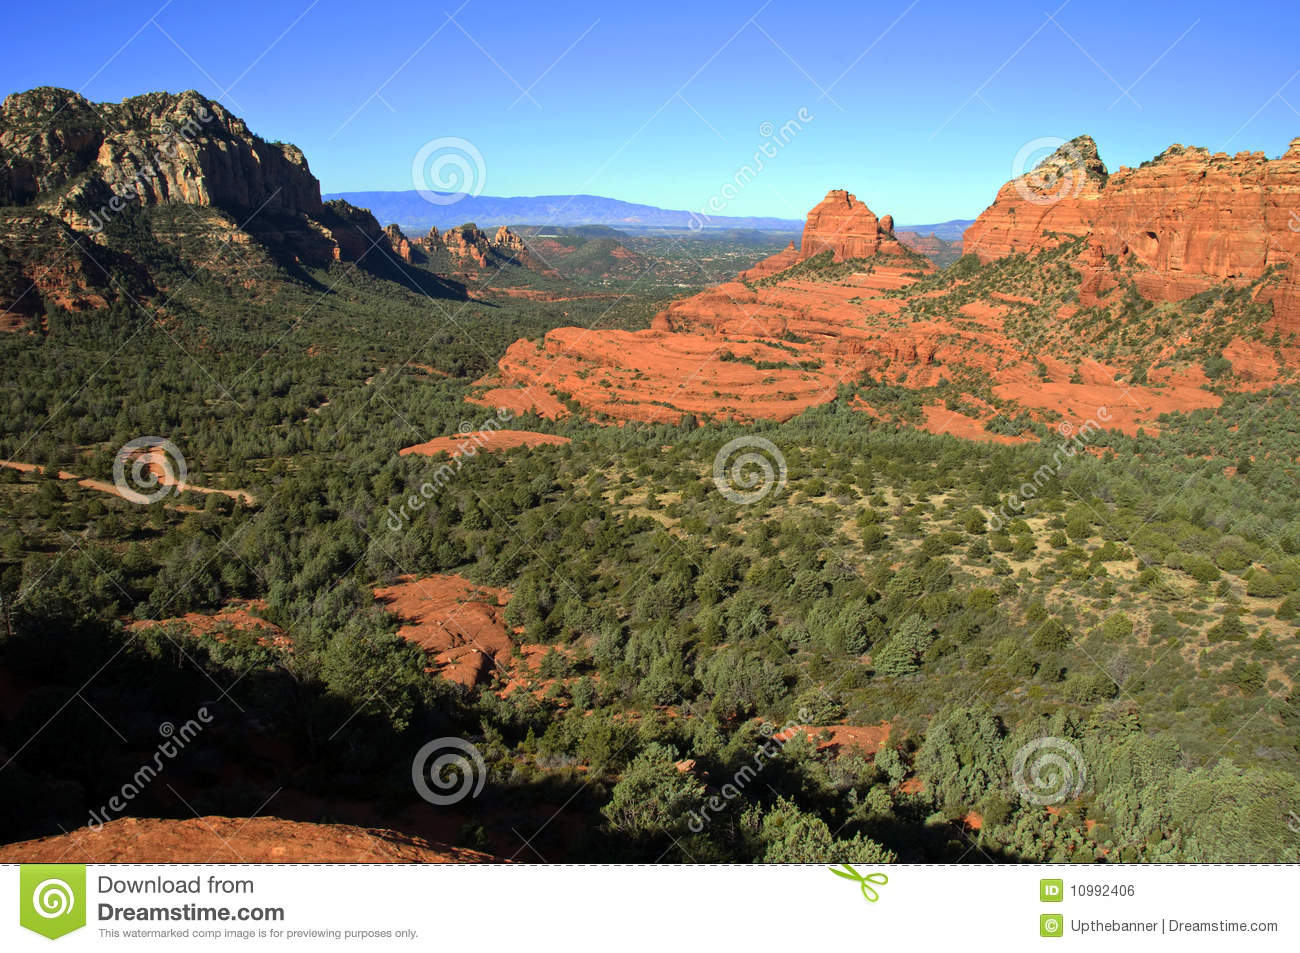 Scenic red stone landscape of sedona in arizona royalty for Red stone landscape rock